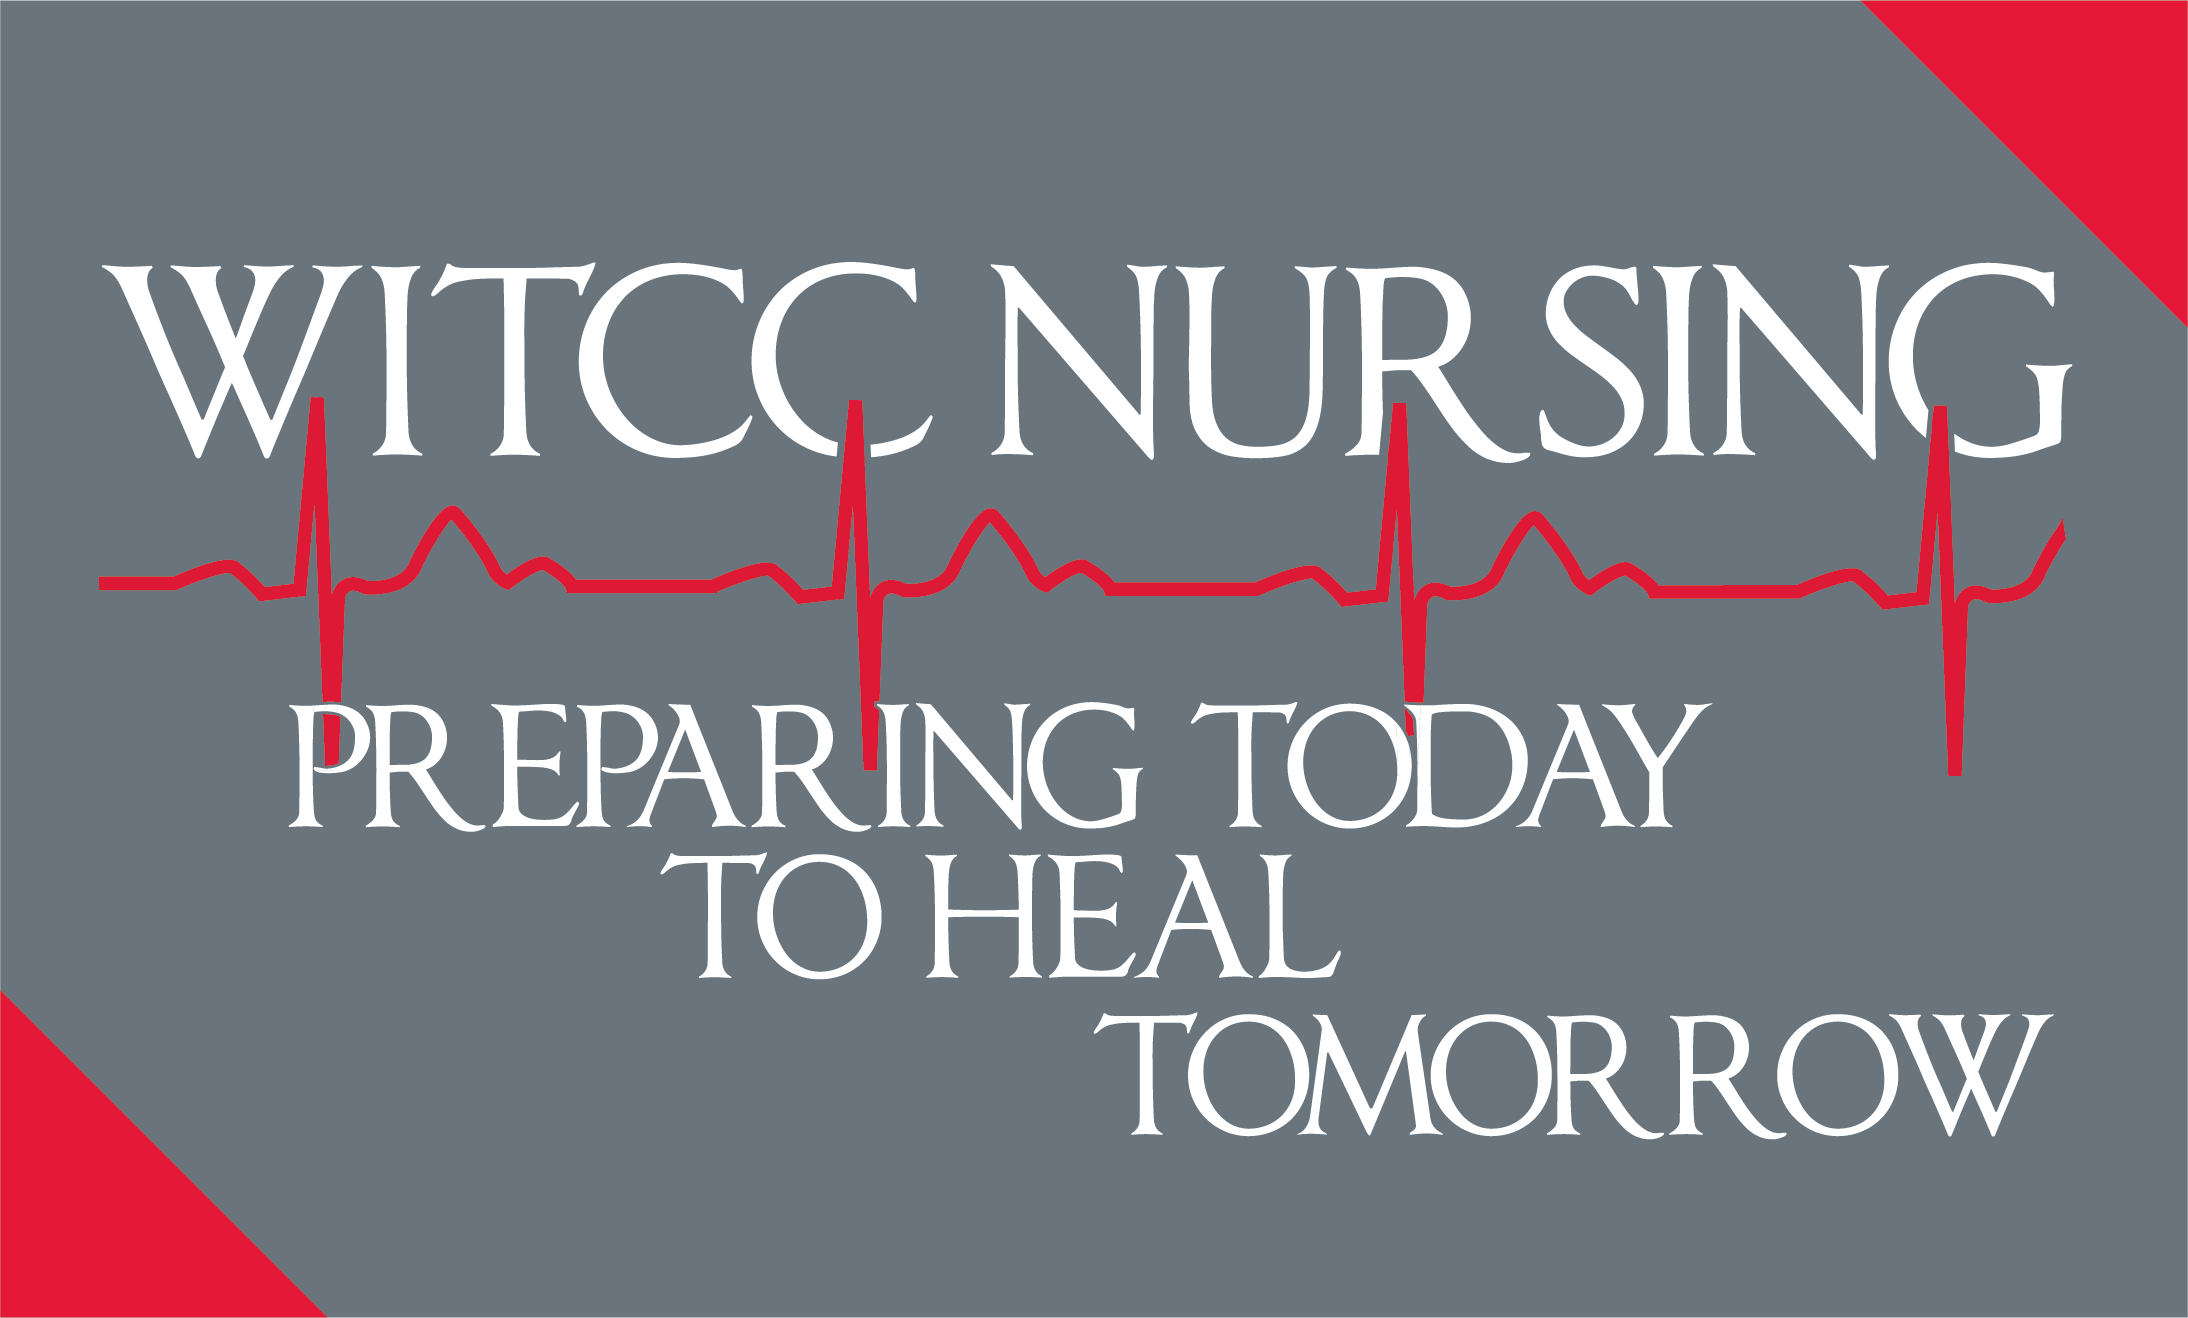 WITCC Nursing 2019